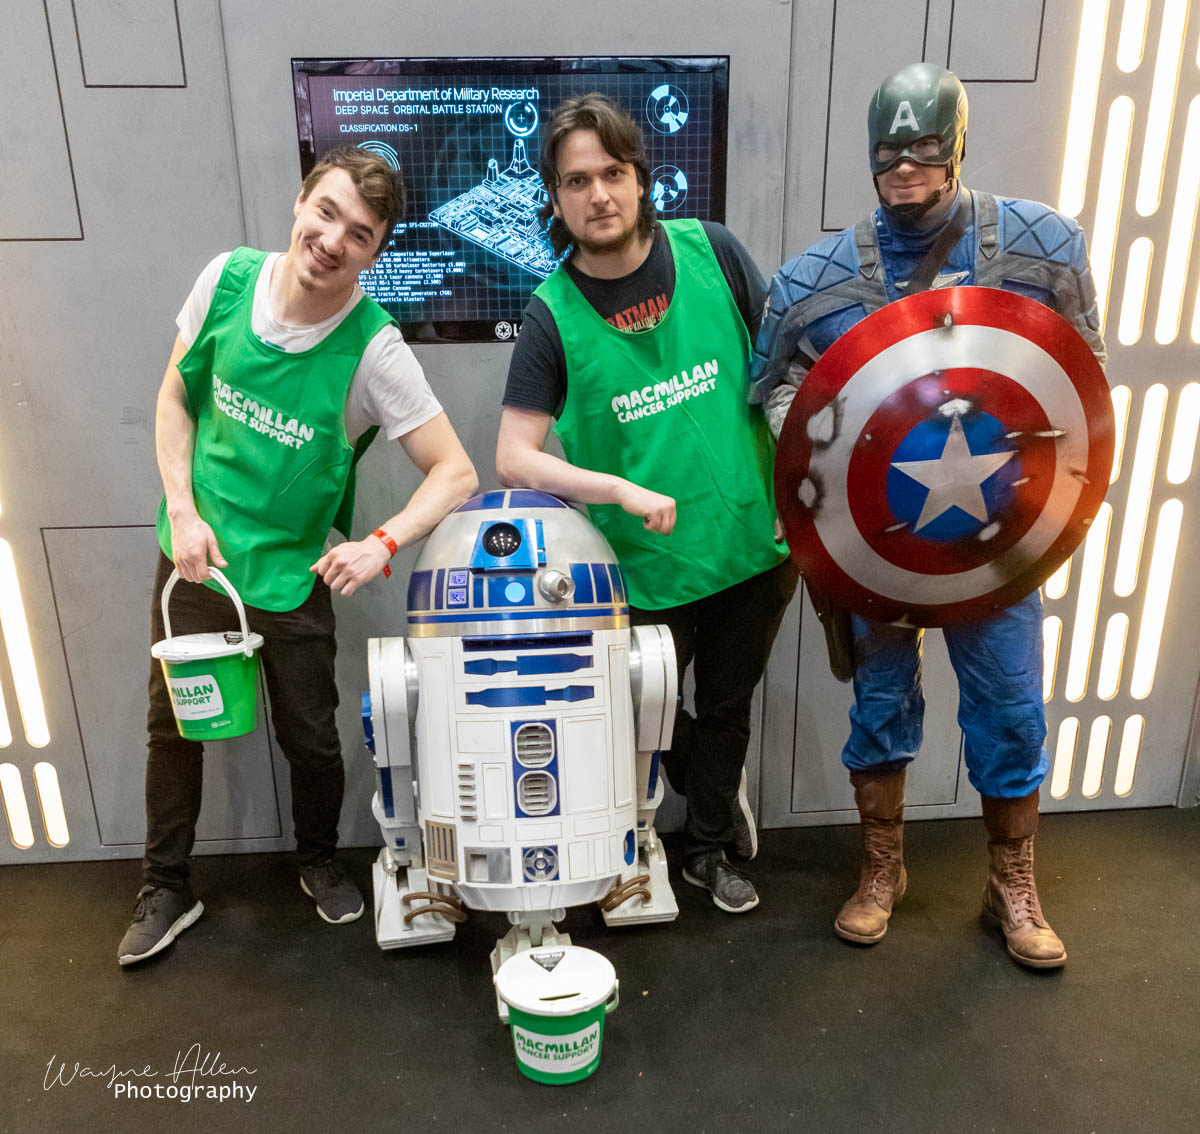 Having a break with R2 and captain America